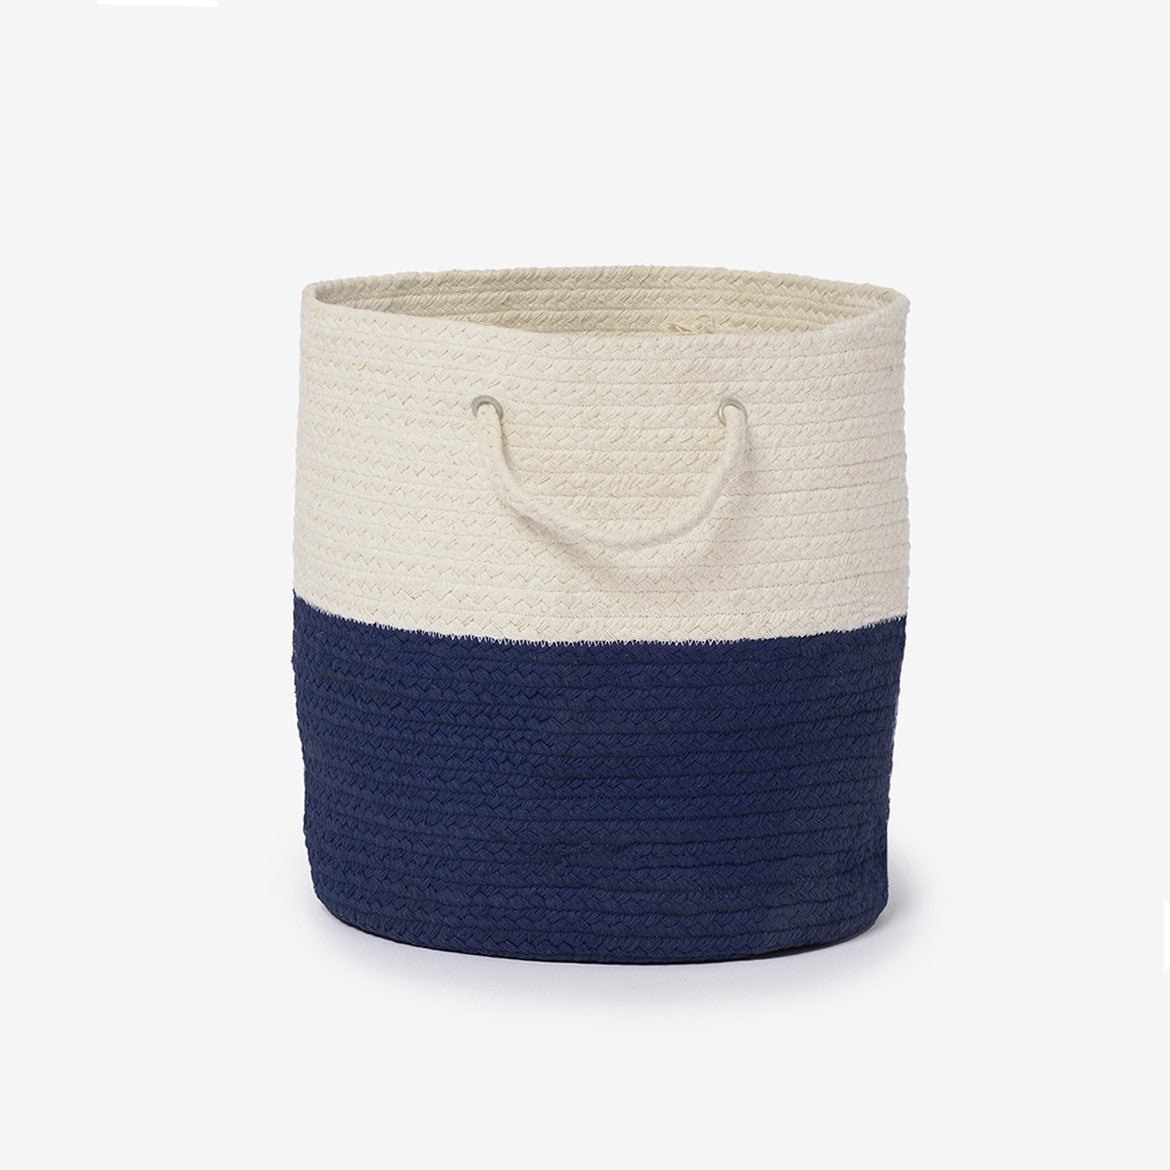 Woven Storage Basket Dipped Braided Storage Bin Navy Blue